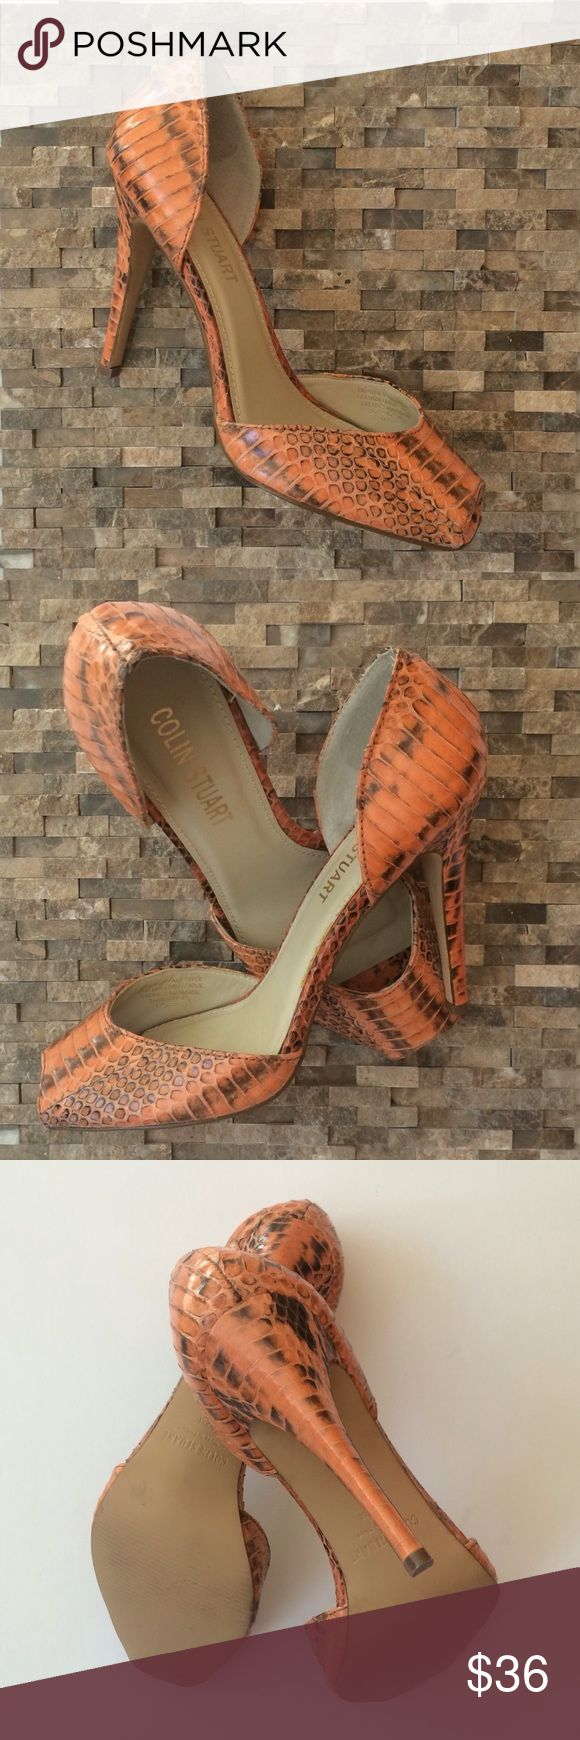 """New! Colin Stuart Snakeskin Heels New! Colin Stuart Snakeskin Heels...genuine snakeskin...leather lining...burnt orange...squared open toe...4"""" heel...these shoes are unworn...original box not included. Retail $98 Colin Stuart Shoes Heels"""